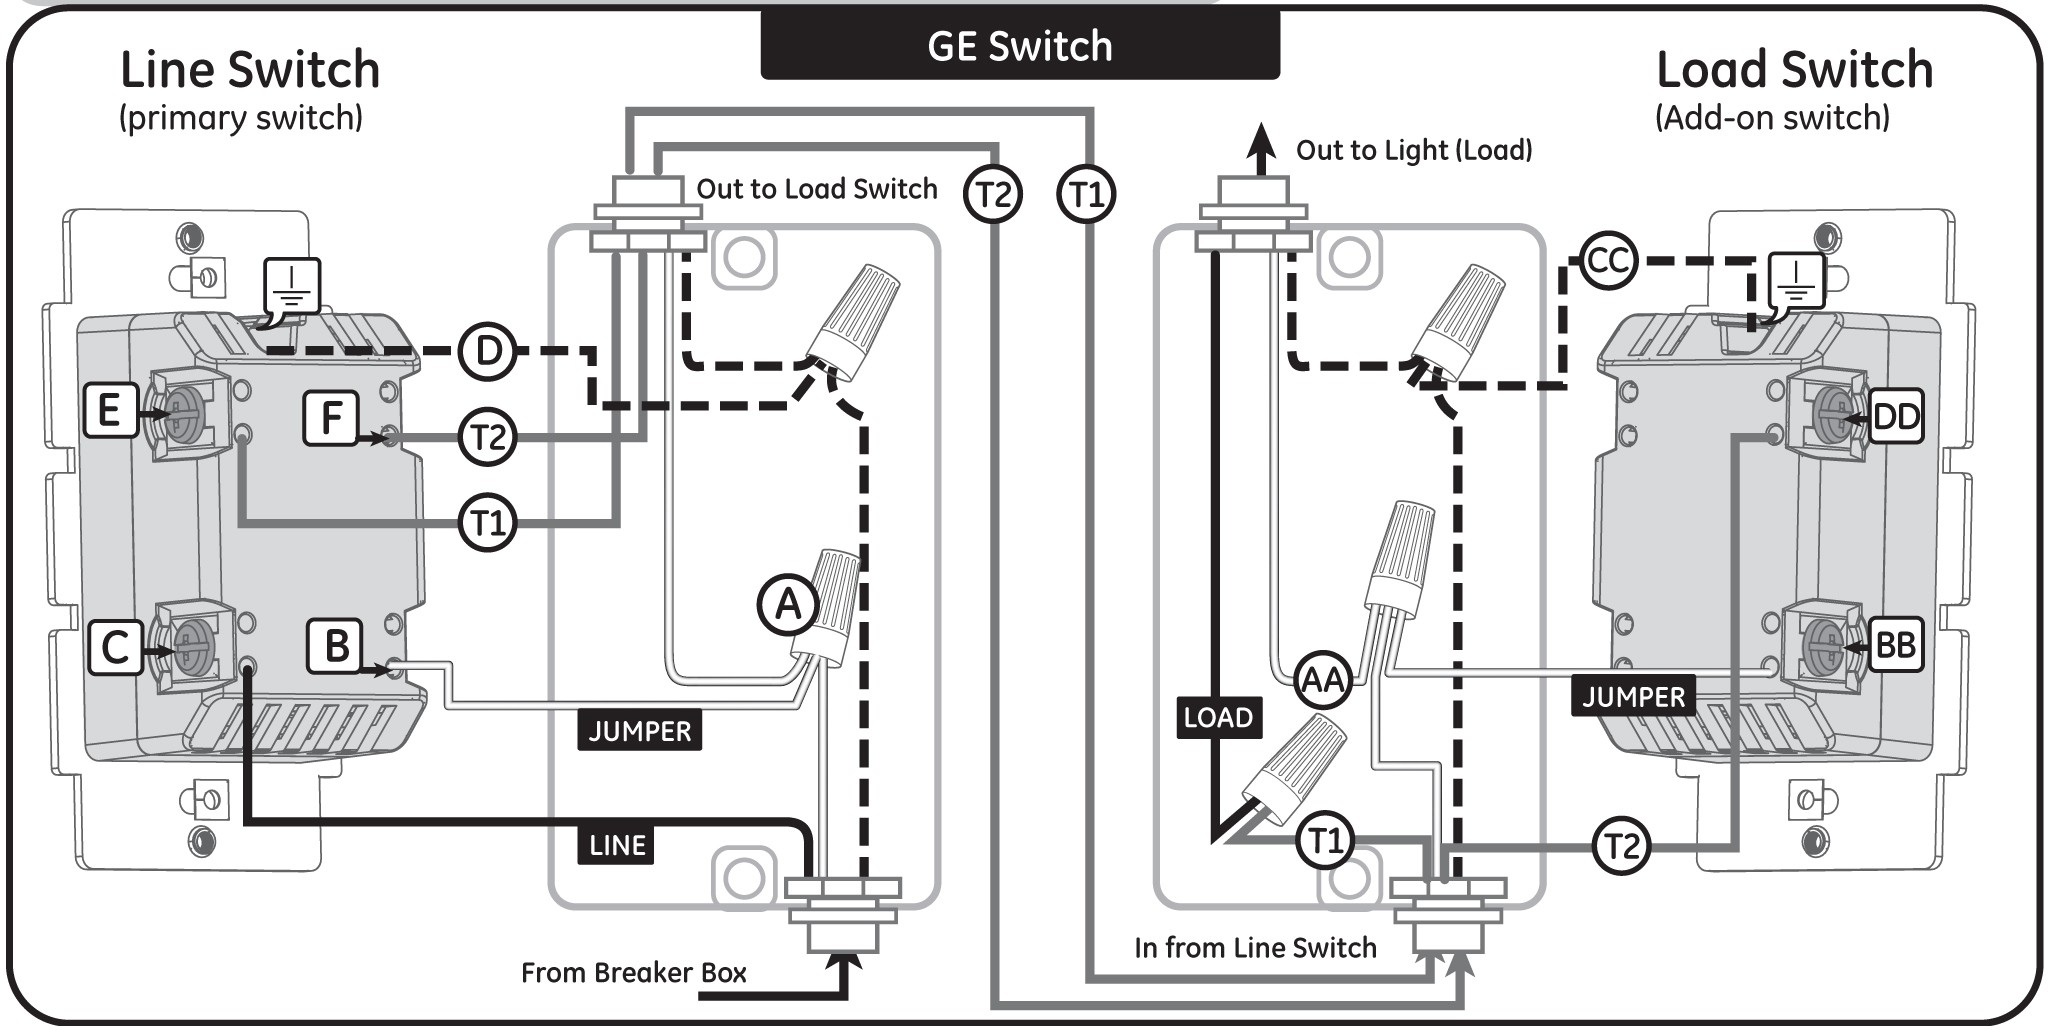 And Way Switch Wiring Diagrams on 4 way switch ladder diagram, 4 way switch operation, easy 4-way switch diagram, 4 way switch schematic, 4 way switch troubleshooting, 4 way dimmer switch diagram, 4 way switch installation, 4 way lighting diagram, 4 way switch wire, 4 way switch circuit, 4 way wall switch diagram, 4 way switch building diagram, 5-way light switch diagram, 4 way light diagram, 4-way circuit diagram, 4 way switch timer, 3-way switch diagram, 6-way light switch diagram,